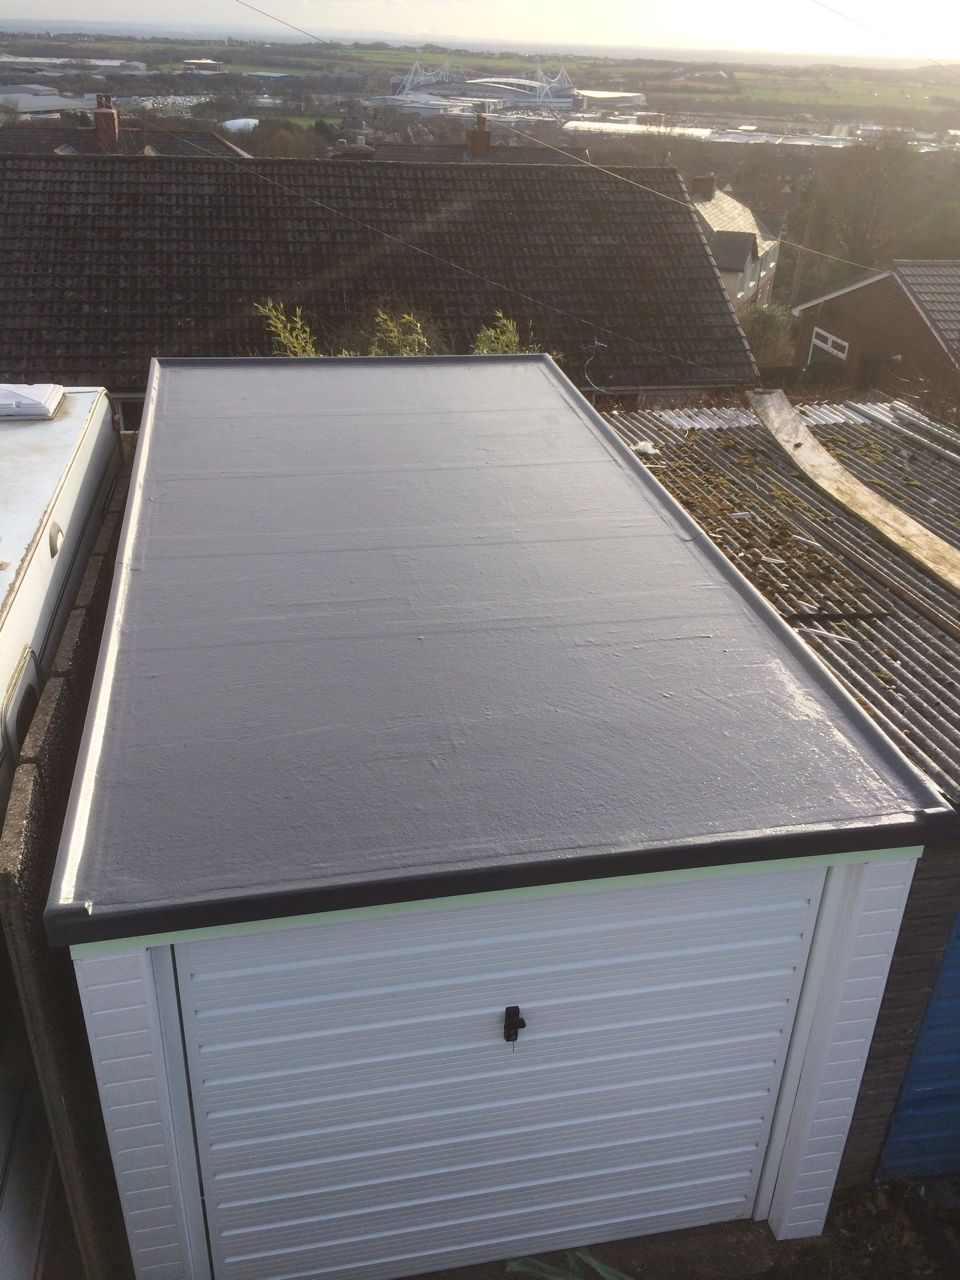 Perfect GRP Roofing Systems For All Types Of Flat Roof Replacement And Garage Roof  Replacement. Free Quote On All Flat Roofs!